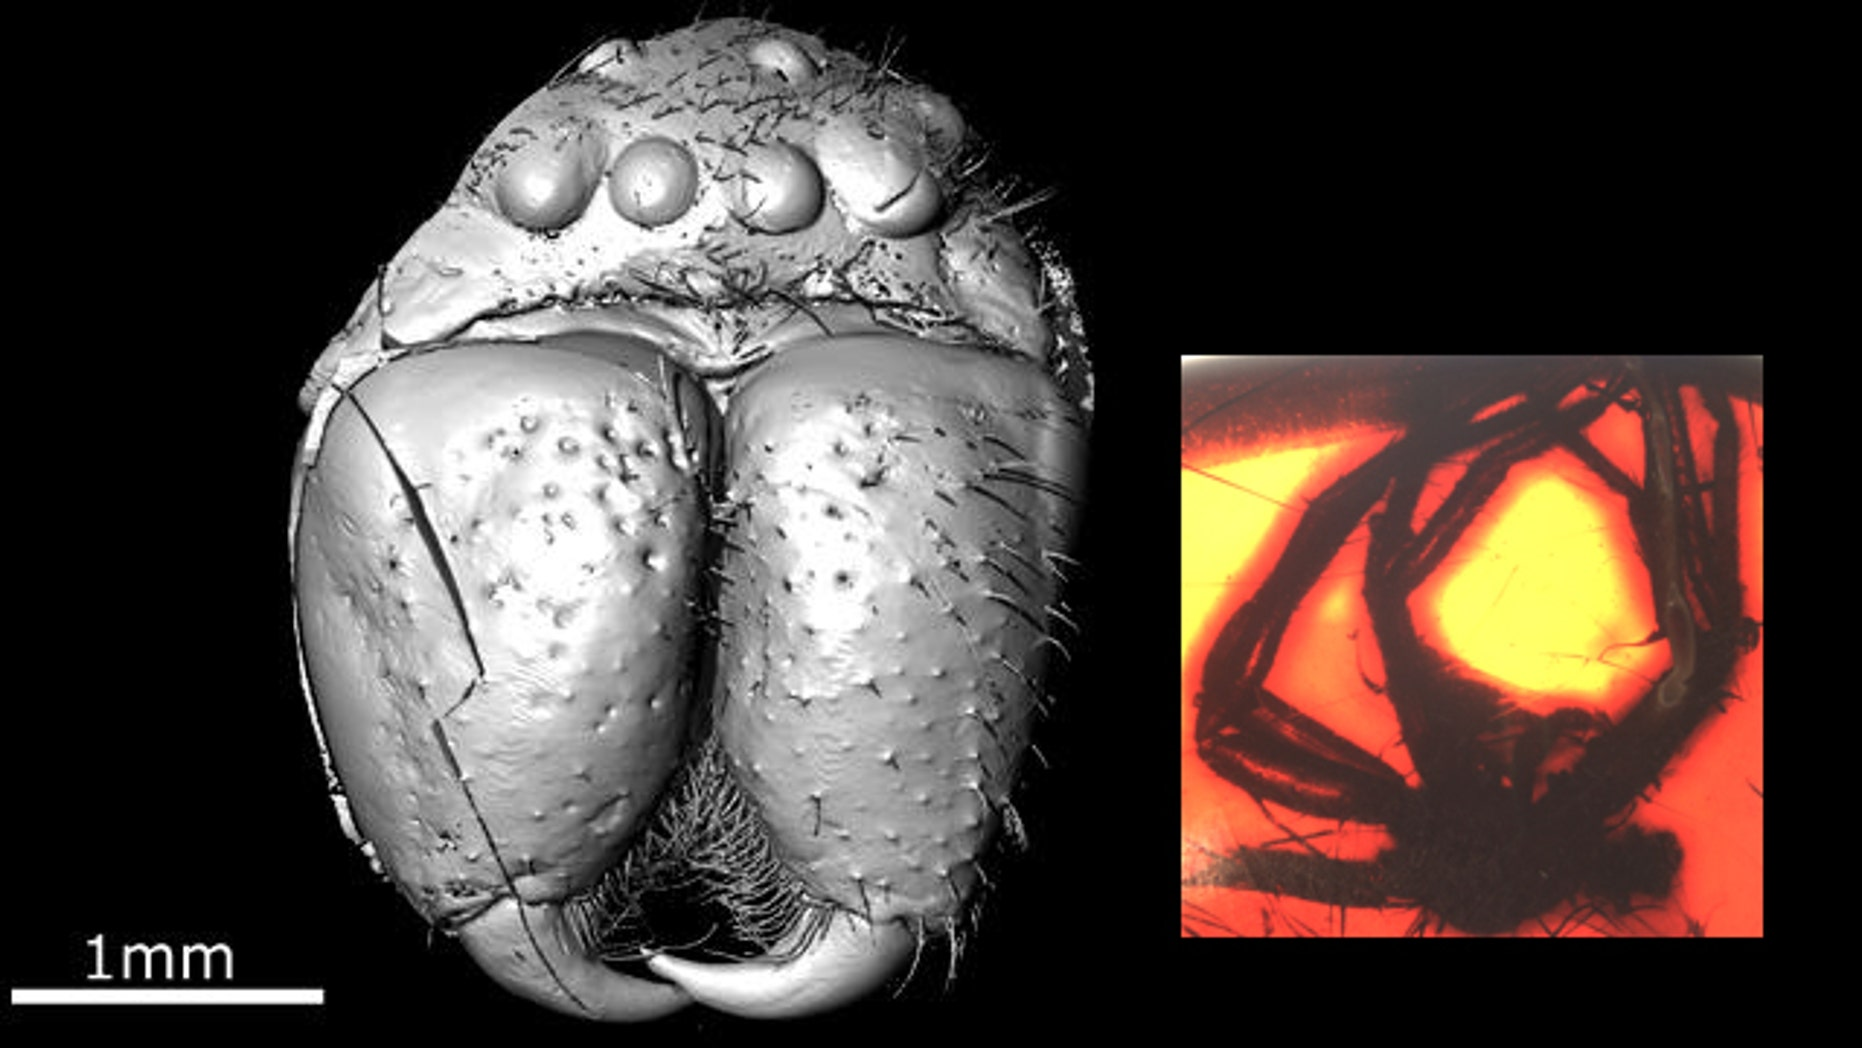 This is Eusprassus crassipes, a fossil huntsman spider in almost 50 million-year-old Baltic amber (shown in inset), as revealed by modern techniques of X-ray computed tomography.